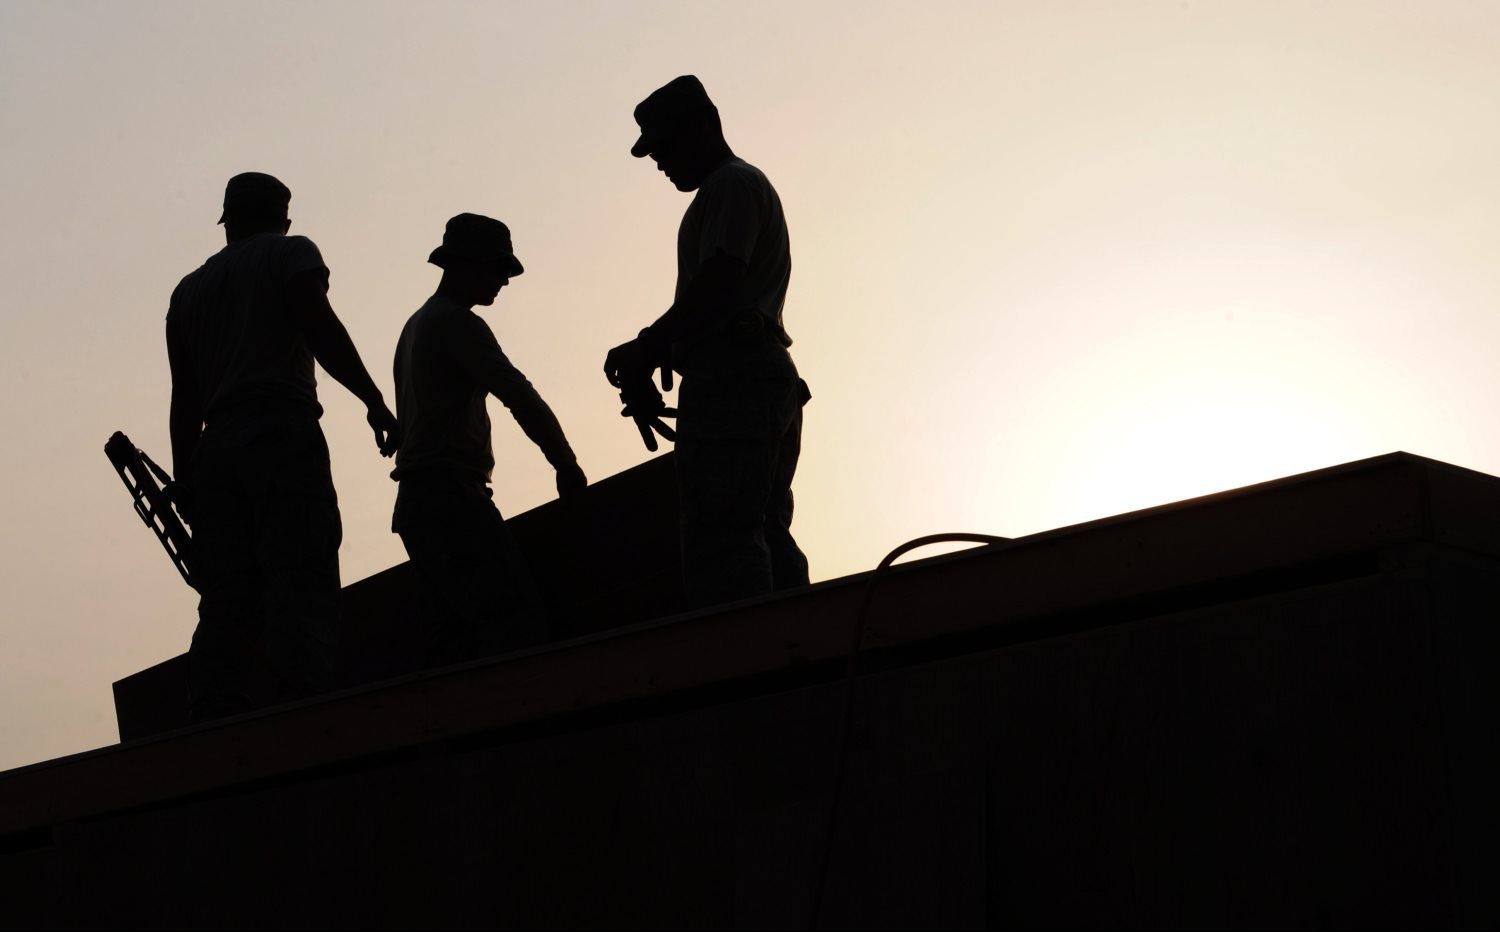 workers-construction-site-hardhats